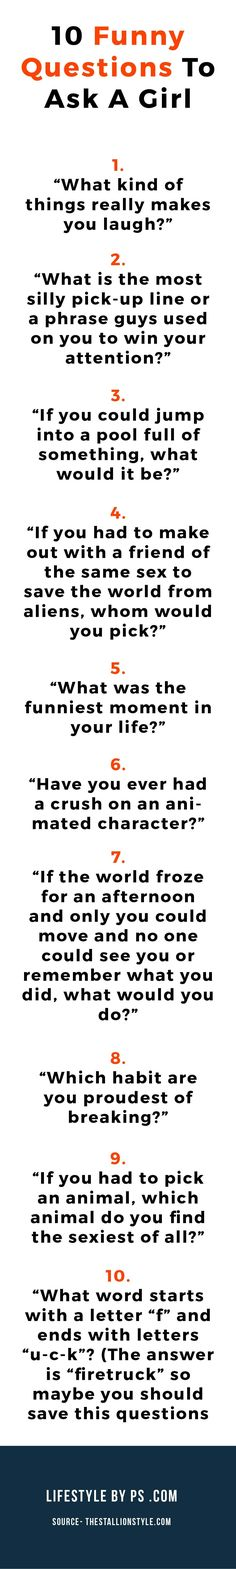 funny questions to ask a guy to make him laugh